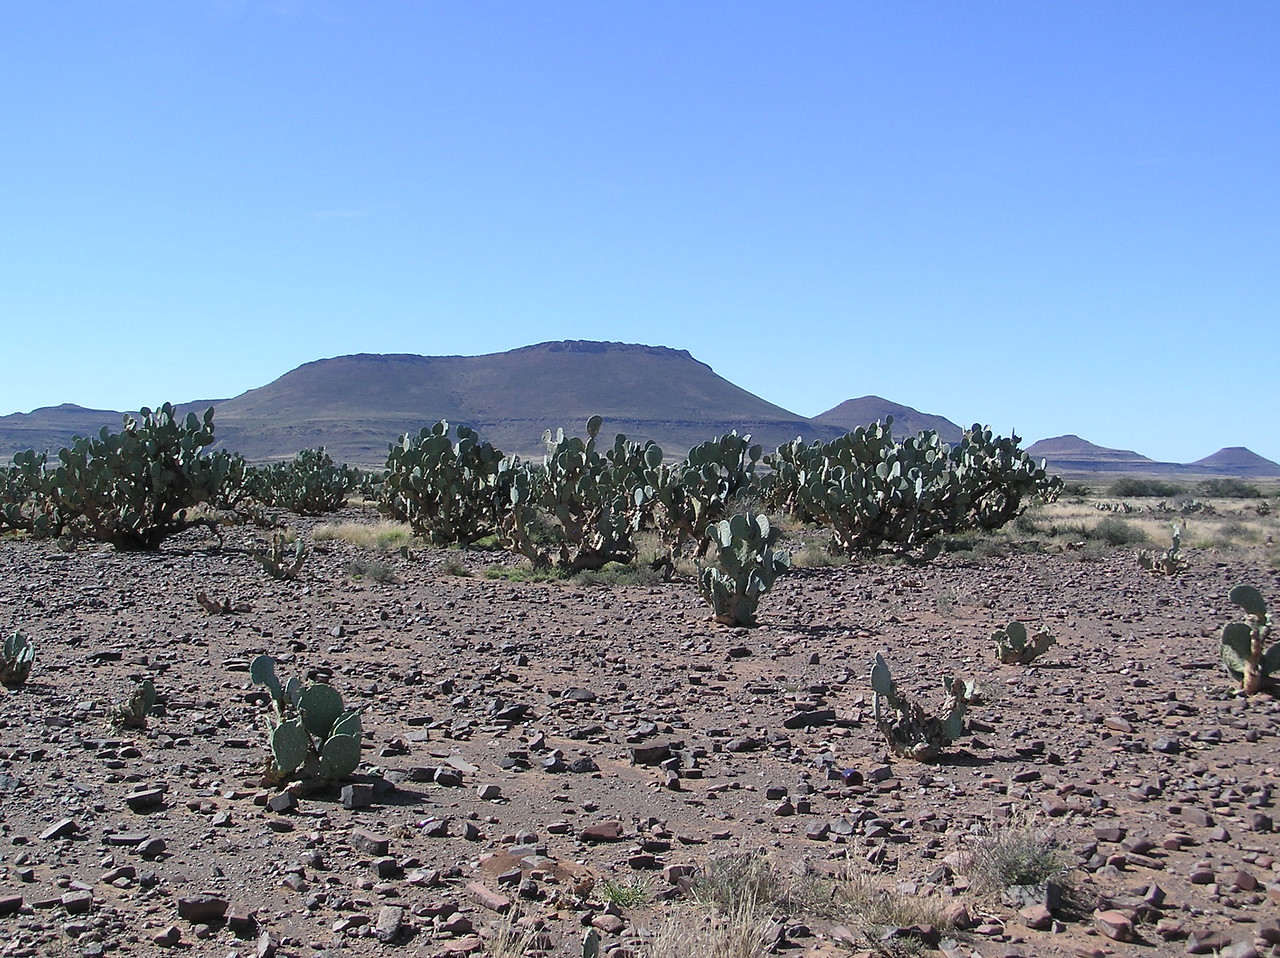 Cactus along the highway in the Karoo<br /> <br /> We saw our first cactus growing along the highway